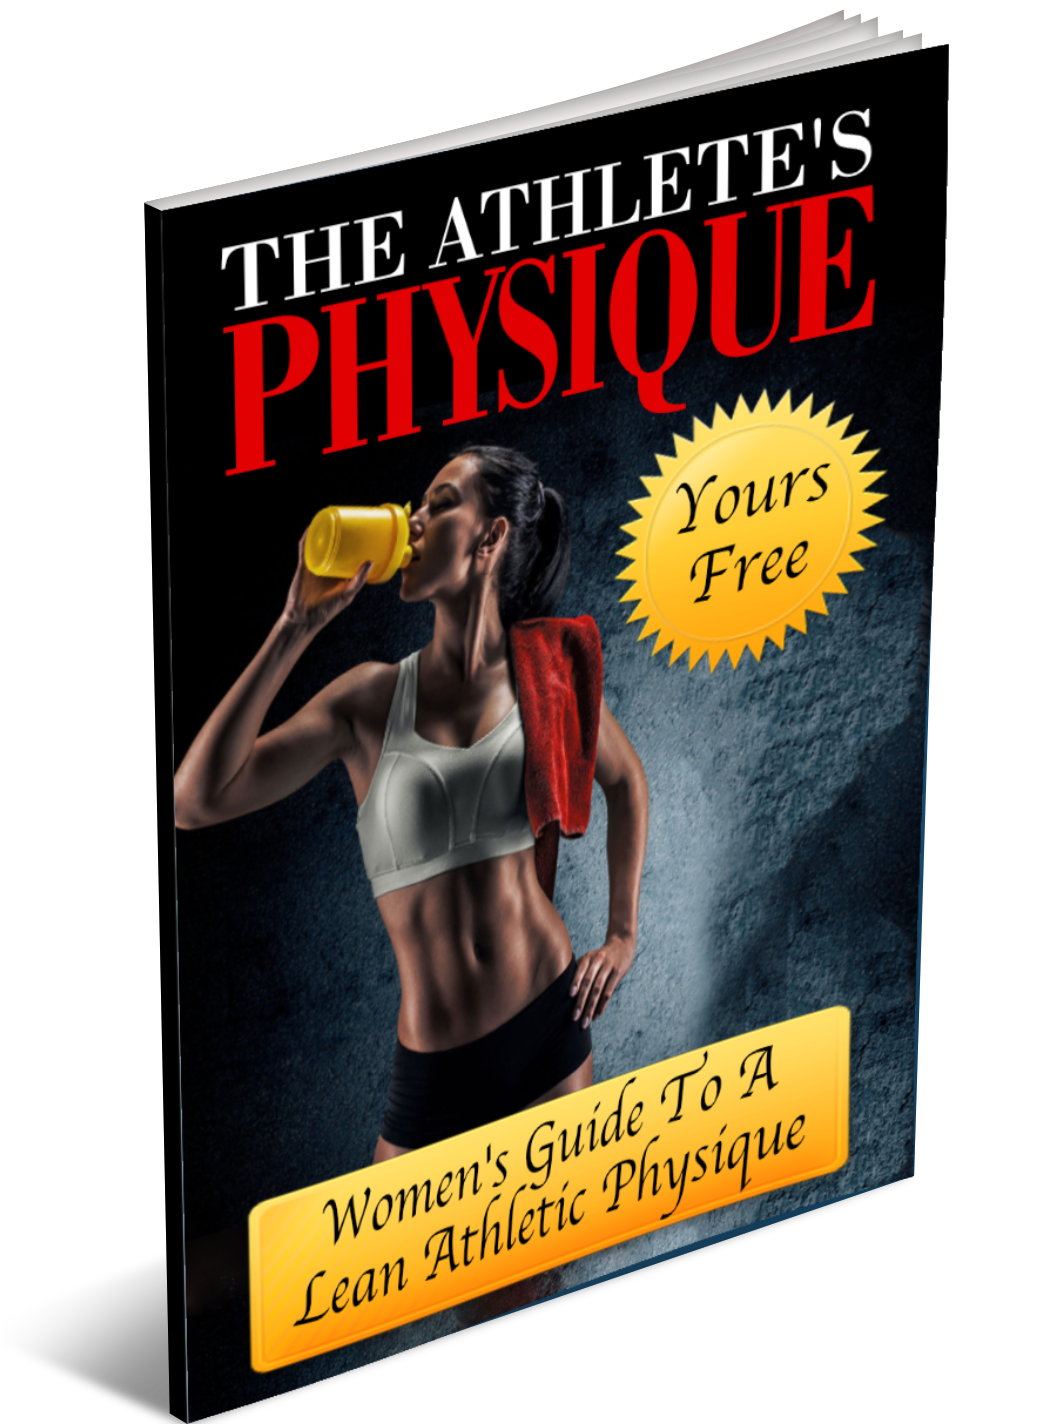 Yours Free Female guide to lean athletic physique